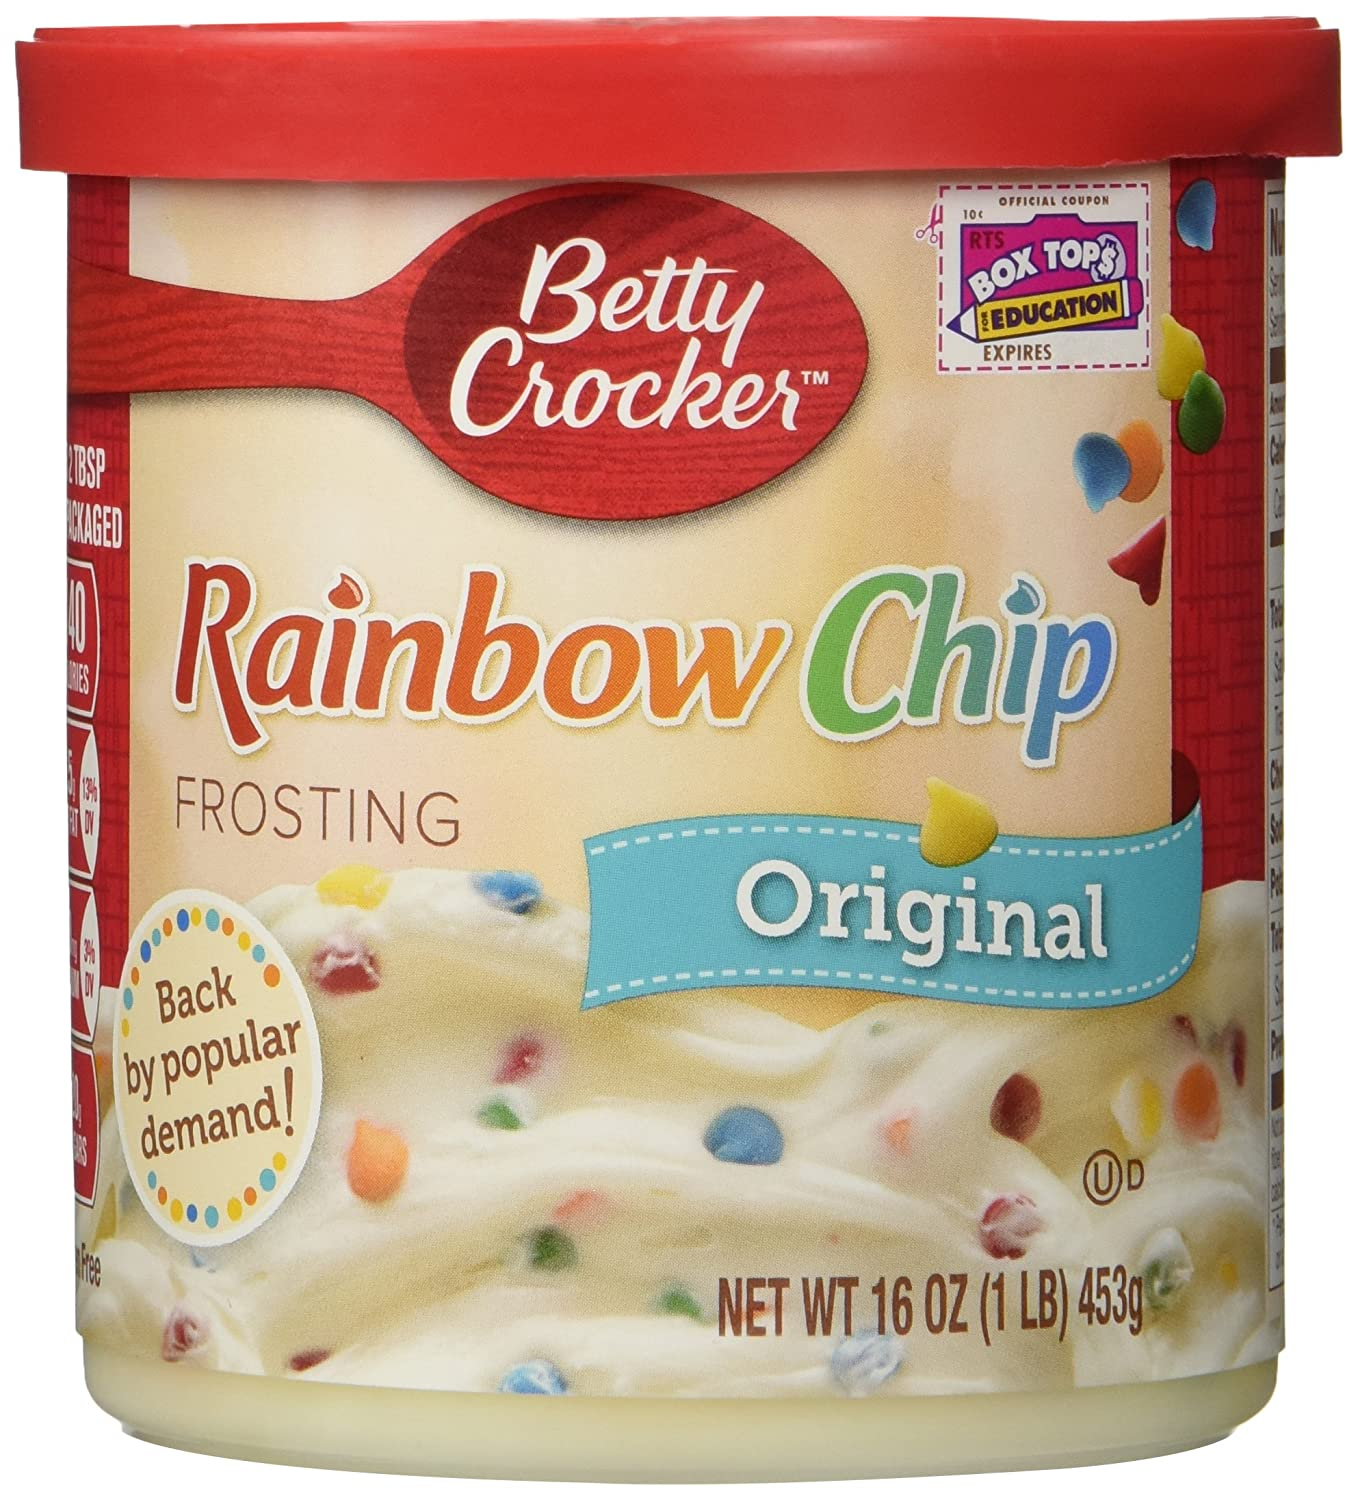 What Can I Make With Rainbow Chip Cake Mix